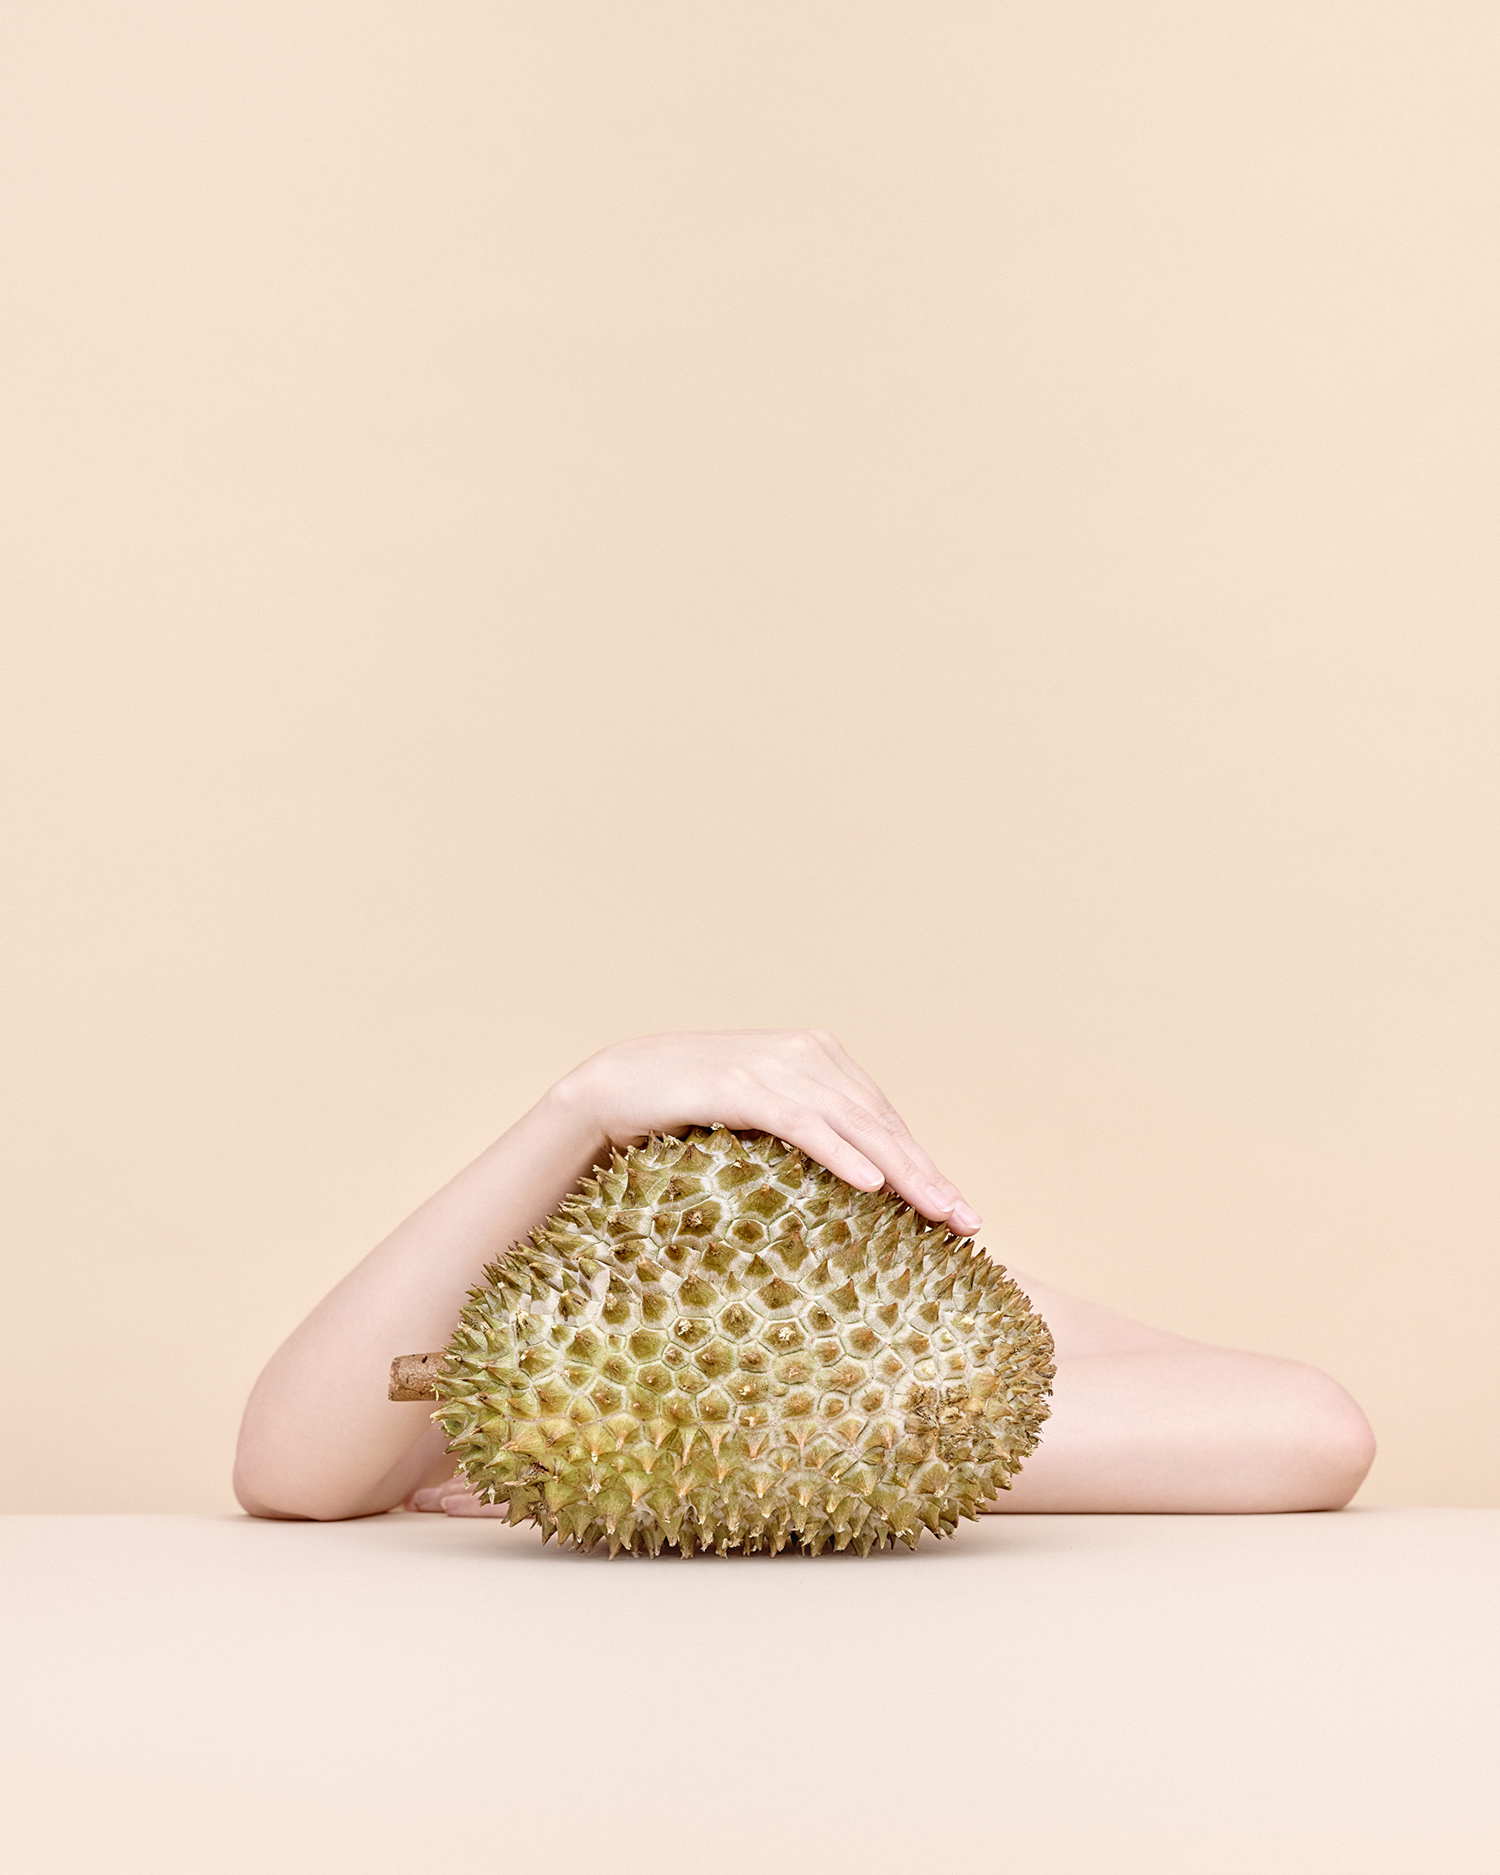 Kristina Varaksina - Anonymous - spiky fruit